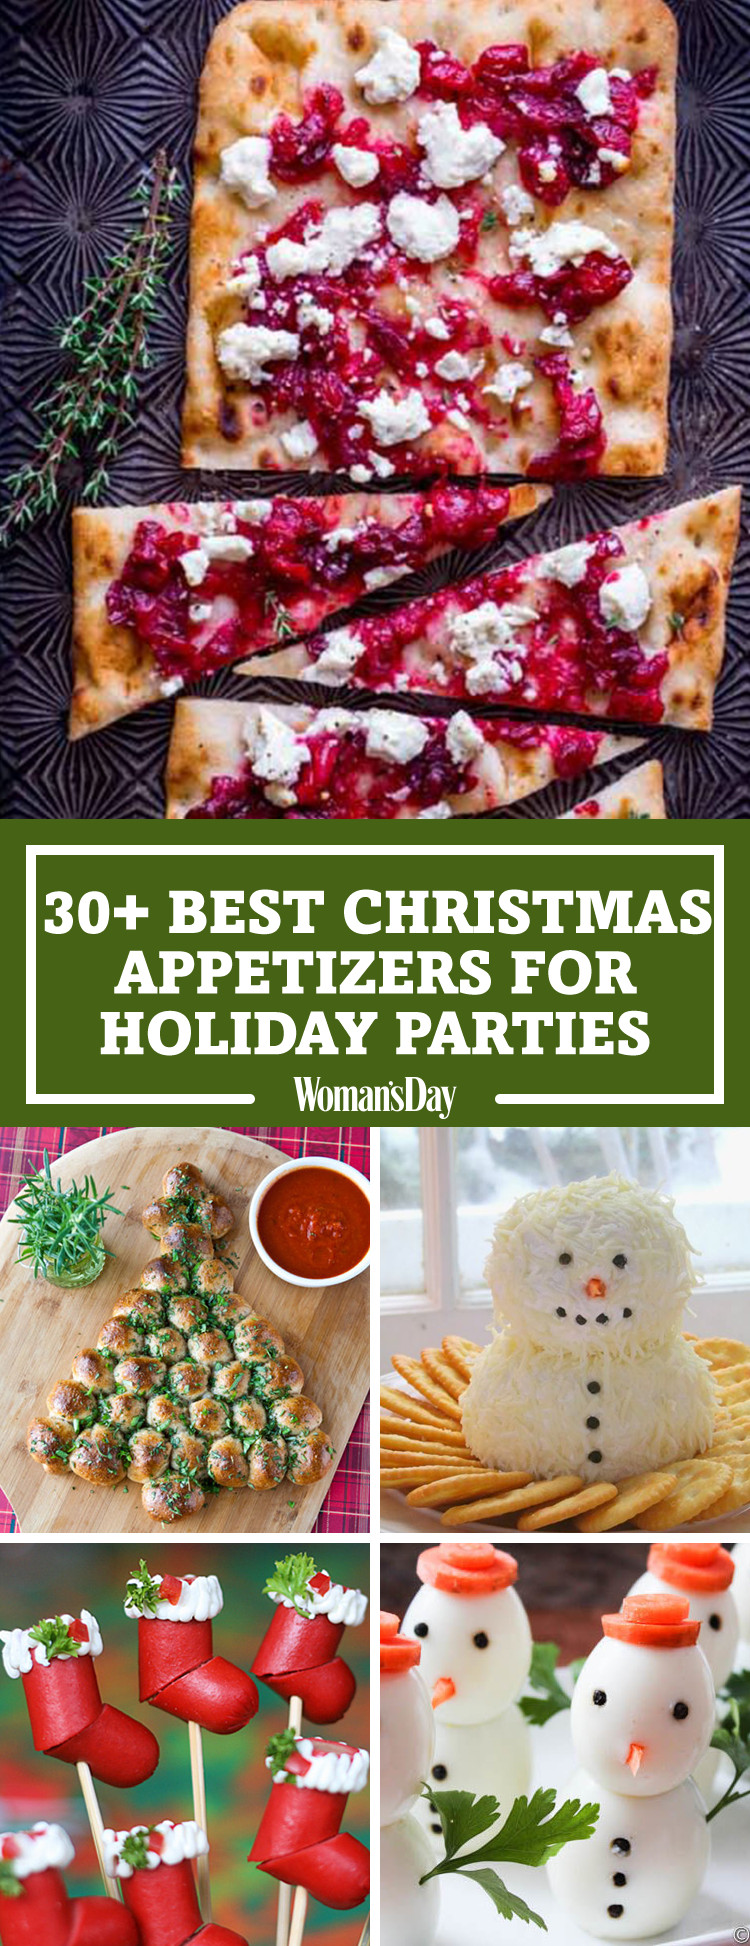 Good Appetizers For Christmas Party  30 Easy Christmas Party Appetizers Best Recipes for